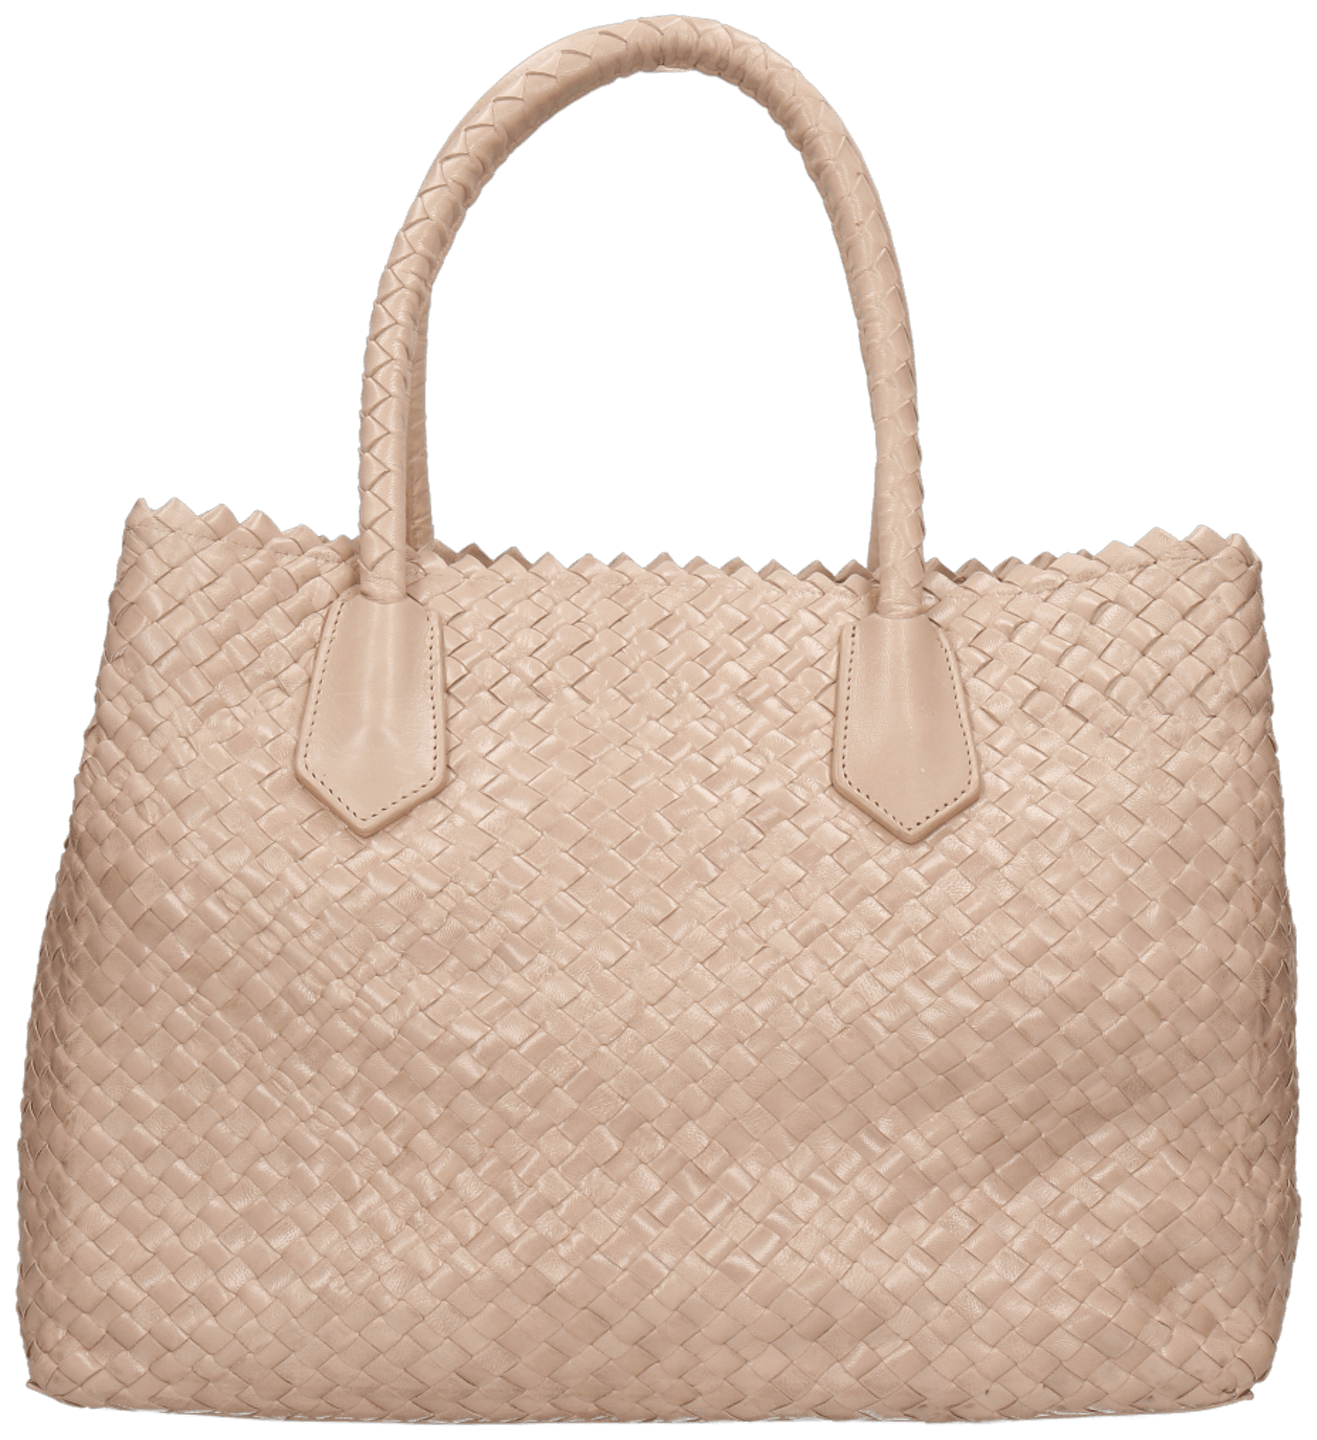 Kimberly 1 Woven Off White